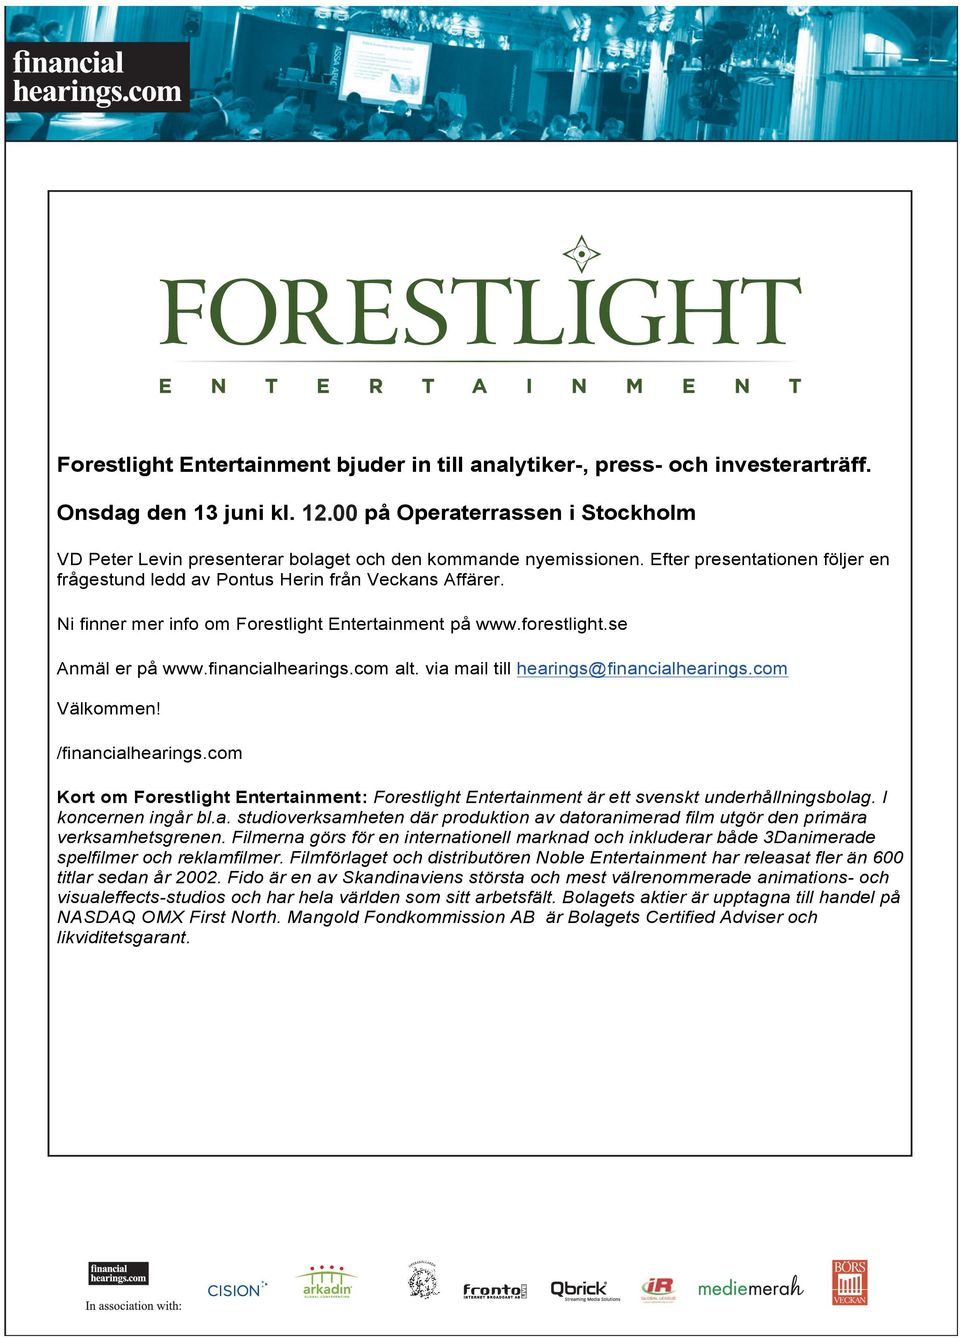 Ni finner mer info om Forestlight Entertainment på www.forestlight.se Anmäl er på www.financialhearings.com alt. via mail till hearings@financialhearings.com Välkommen! /financialhearings.